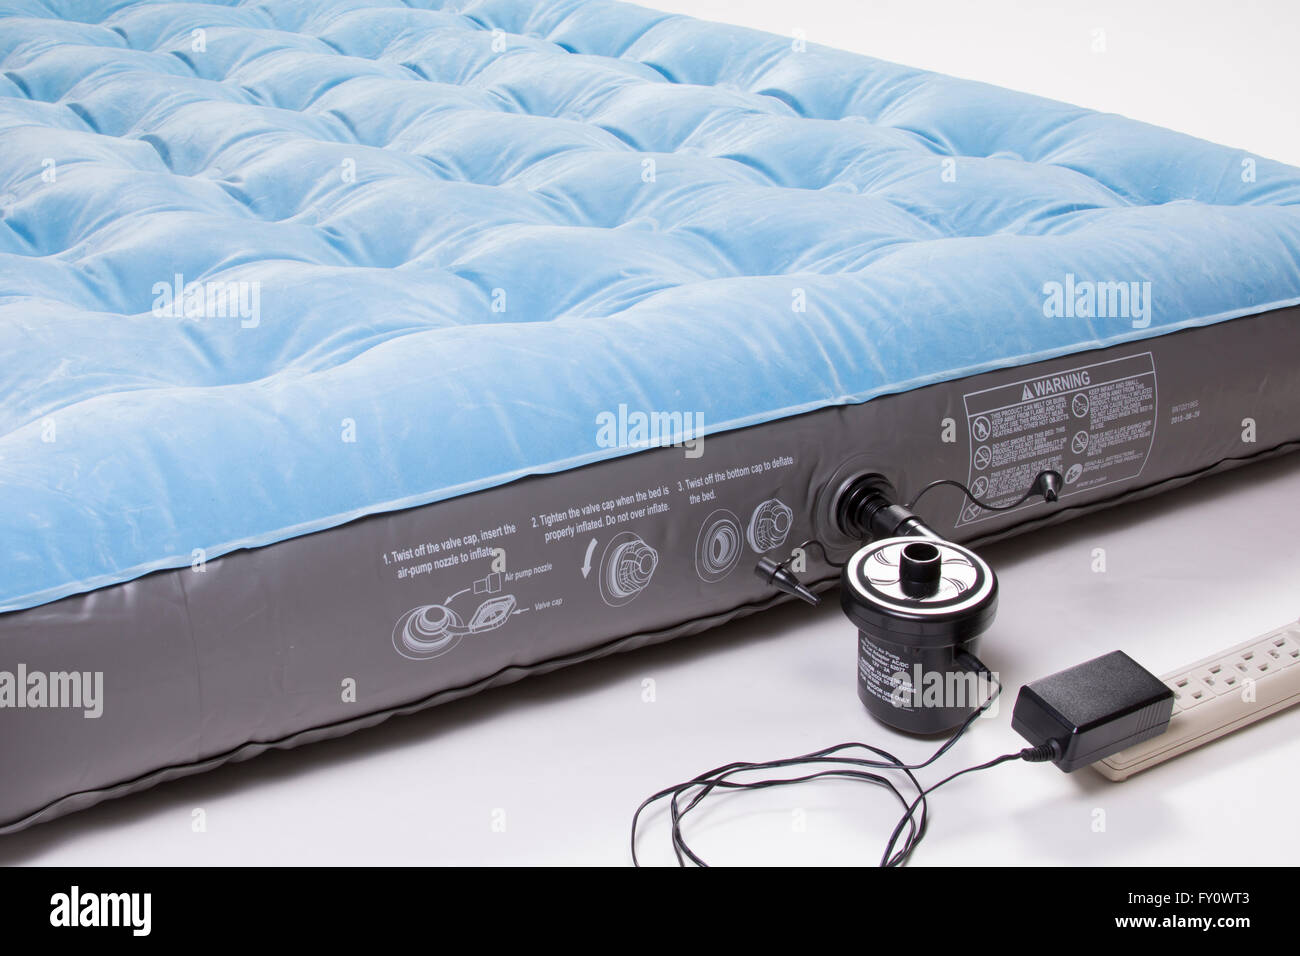 Air Mattress With Electric Pump Stock Photo 102667827 Alamy